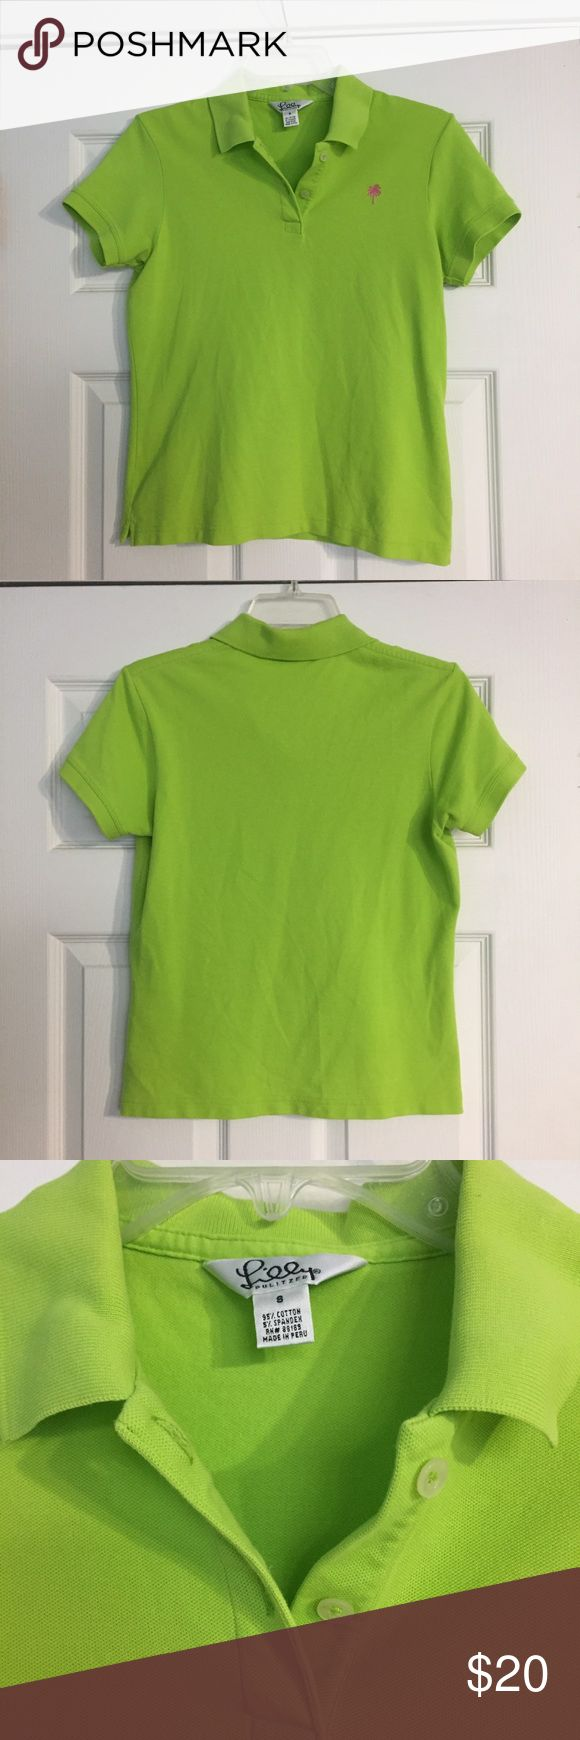 Lilly Pulitzer lime green polo Lilly Pulitzer lime green polo shirt.  Size 8, but is fitted. Would be great for a size 6 if you want a little room.  Pink palm tree logo.  Has been worn a few times but the color is still vibrant. Lilly Pulitzer Tops Tees - Short Sleeve